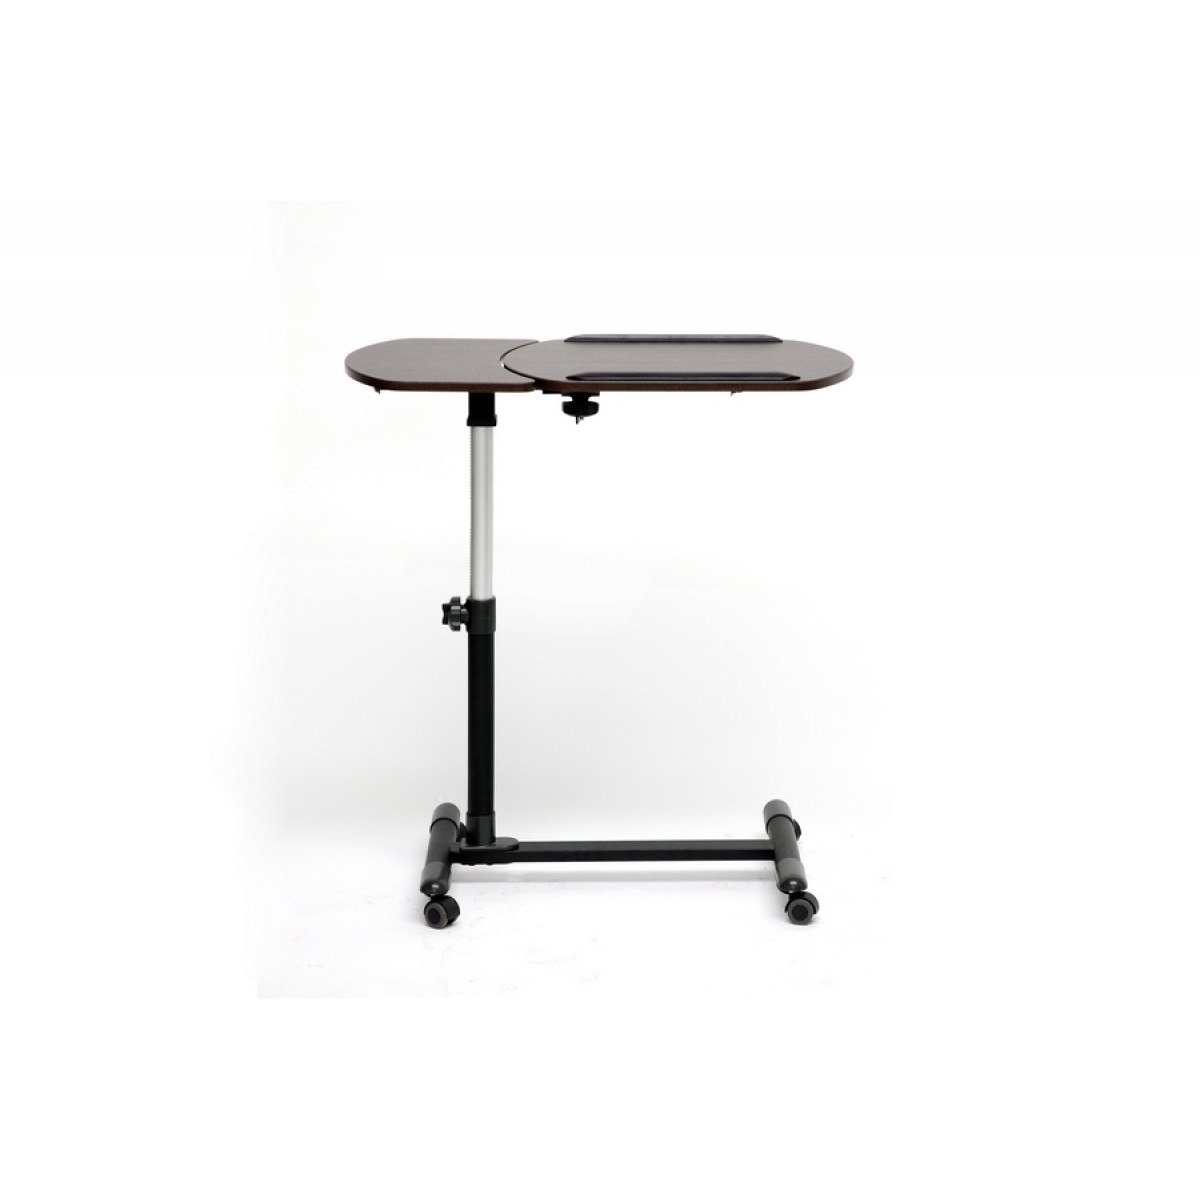 Attirant Brown Wheeled Laptop Work Table Tv Tray Tilt Control Adjustable